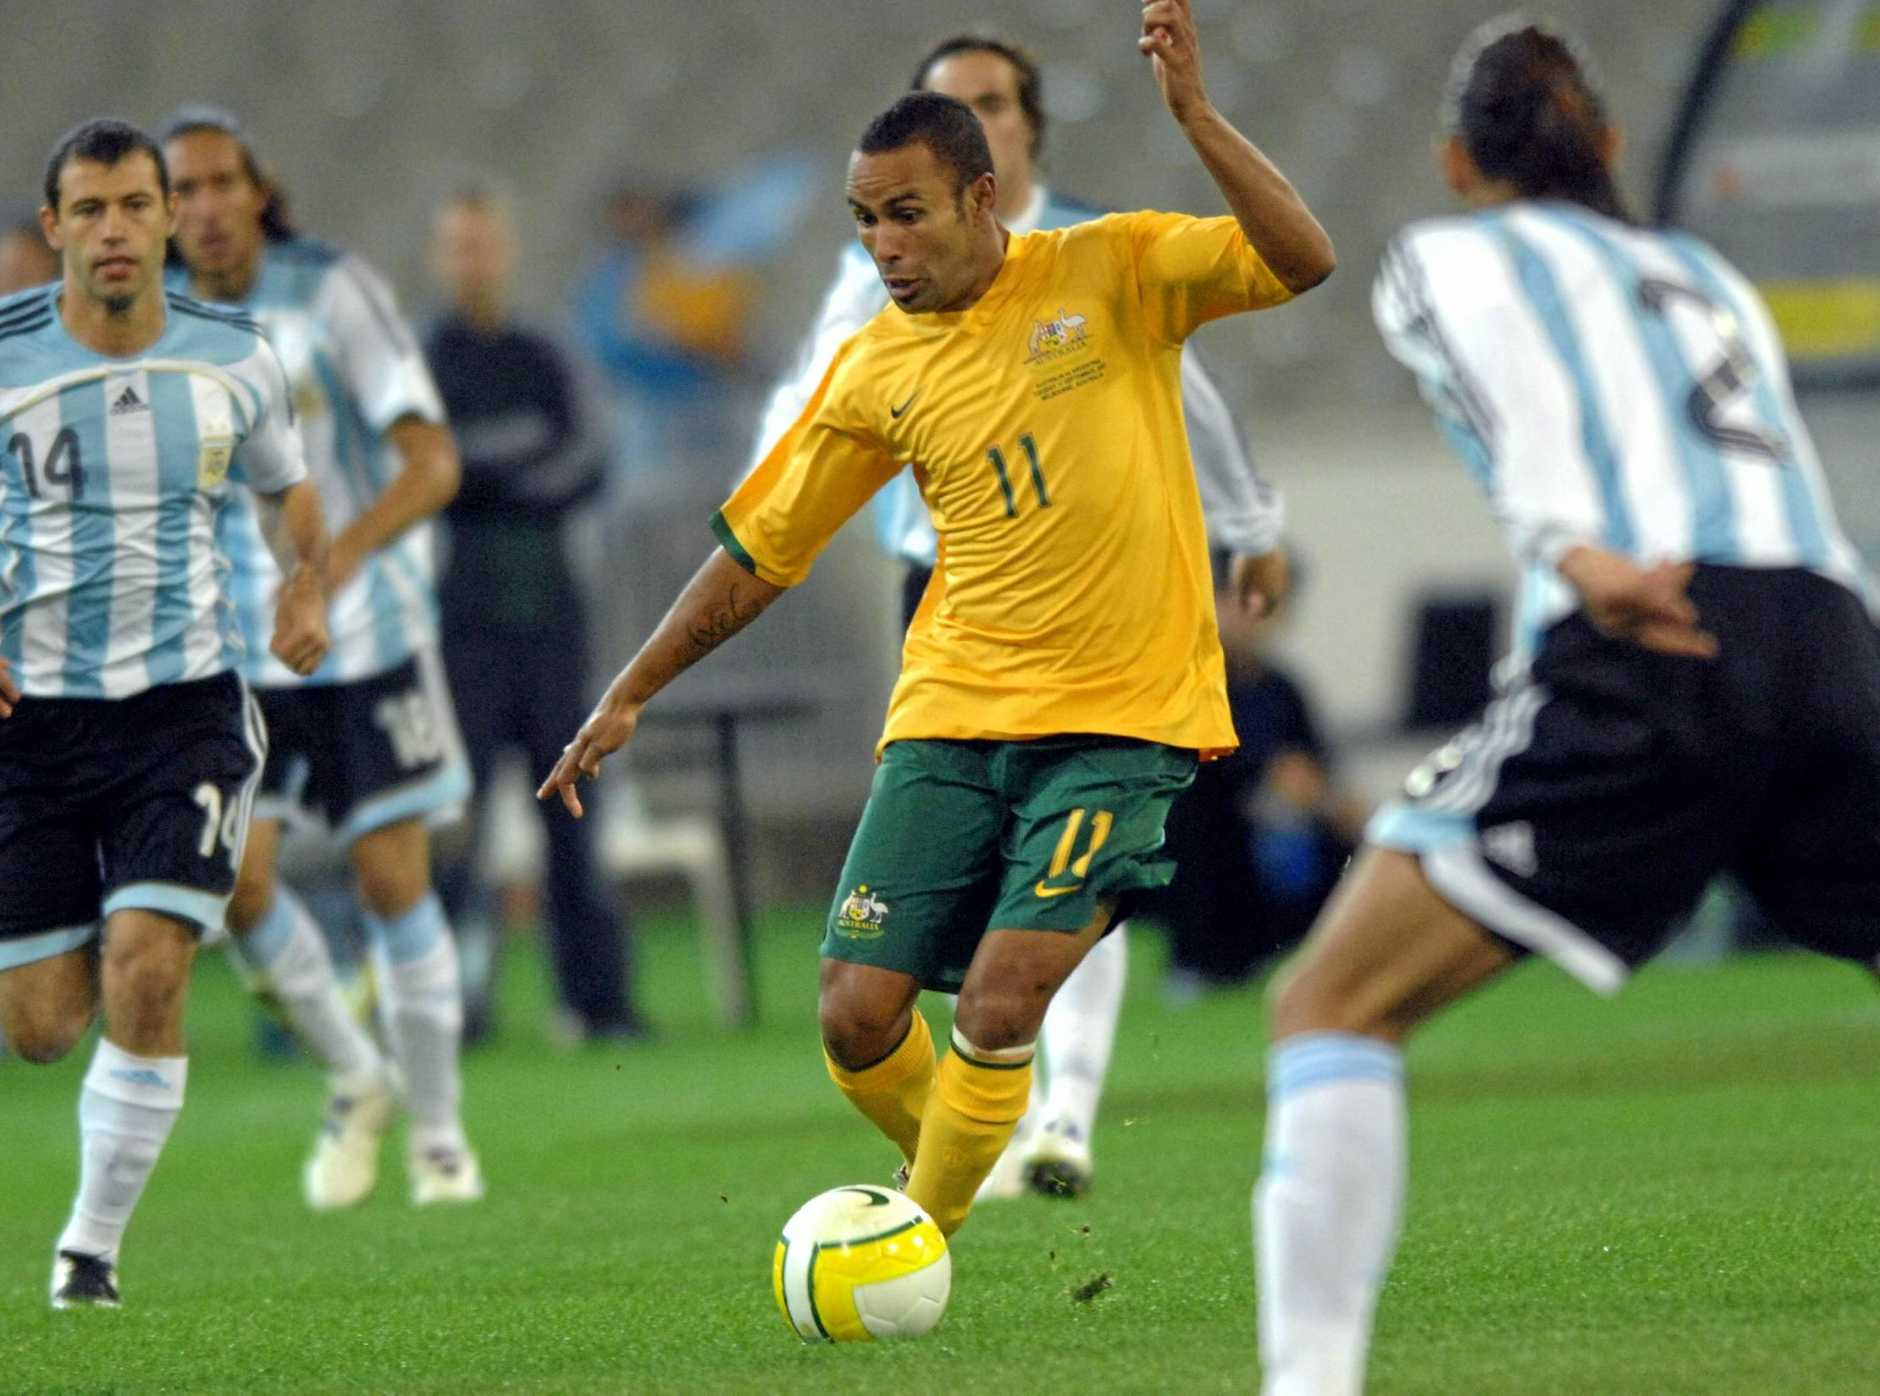 Archie Thompson dribbles the ball as Australia plays Argentina in an international friendly in 2007.